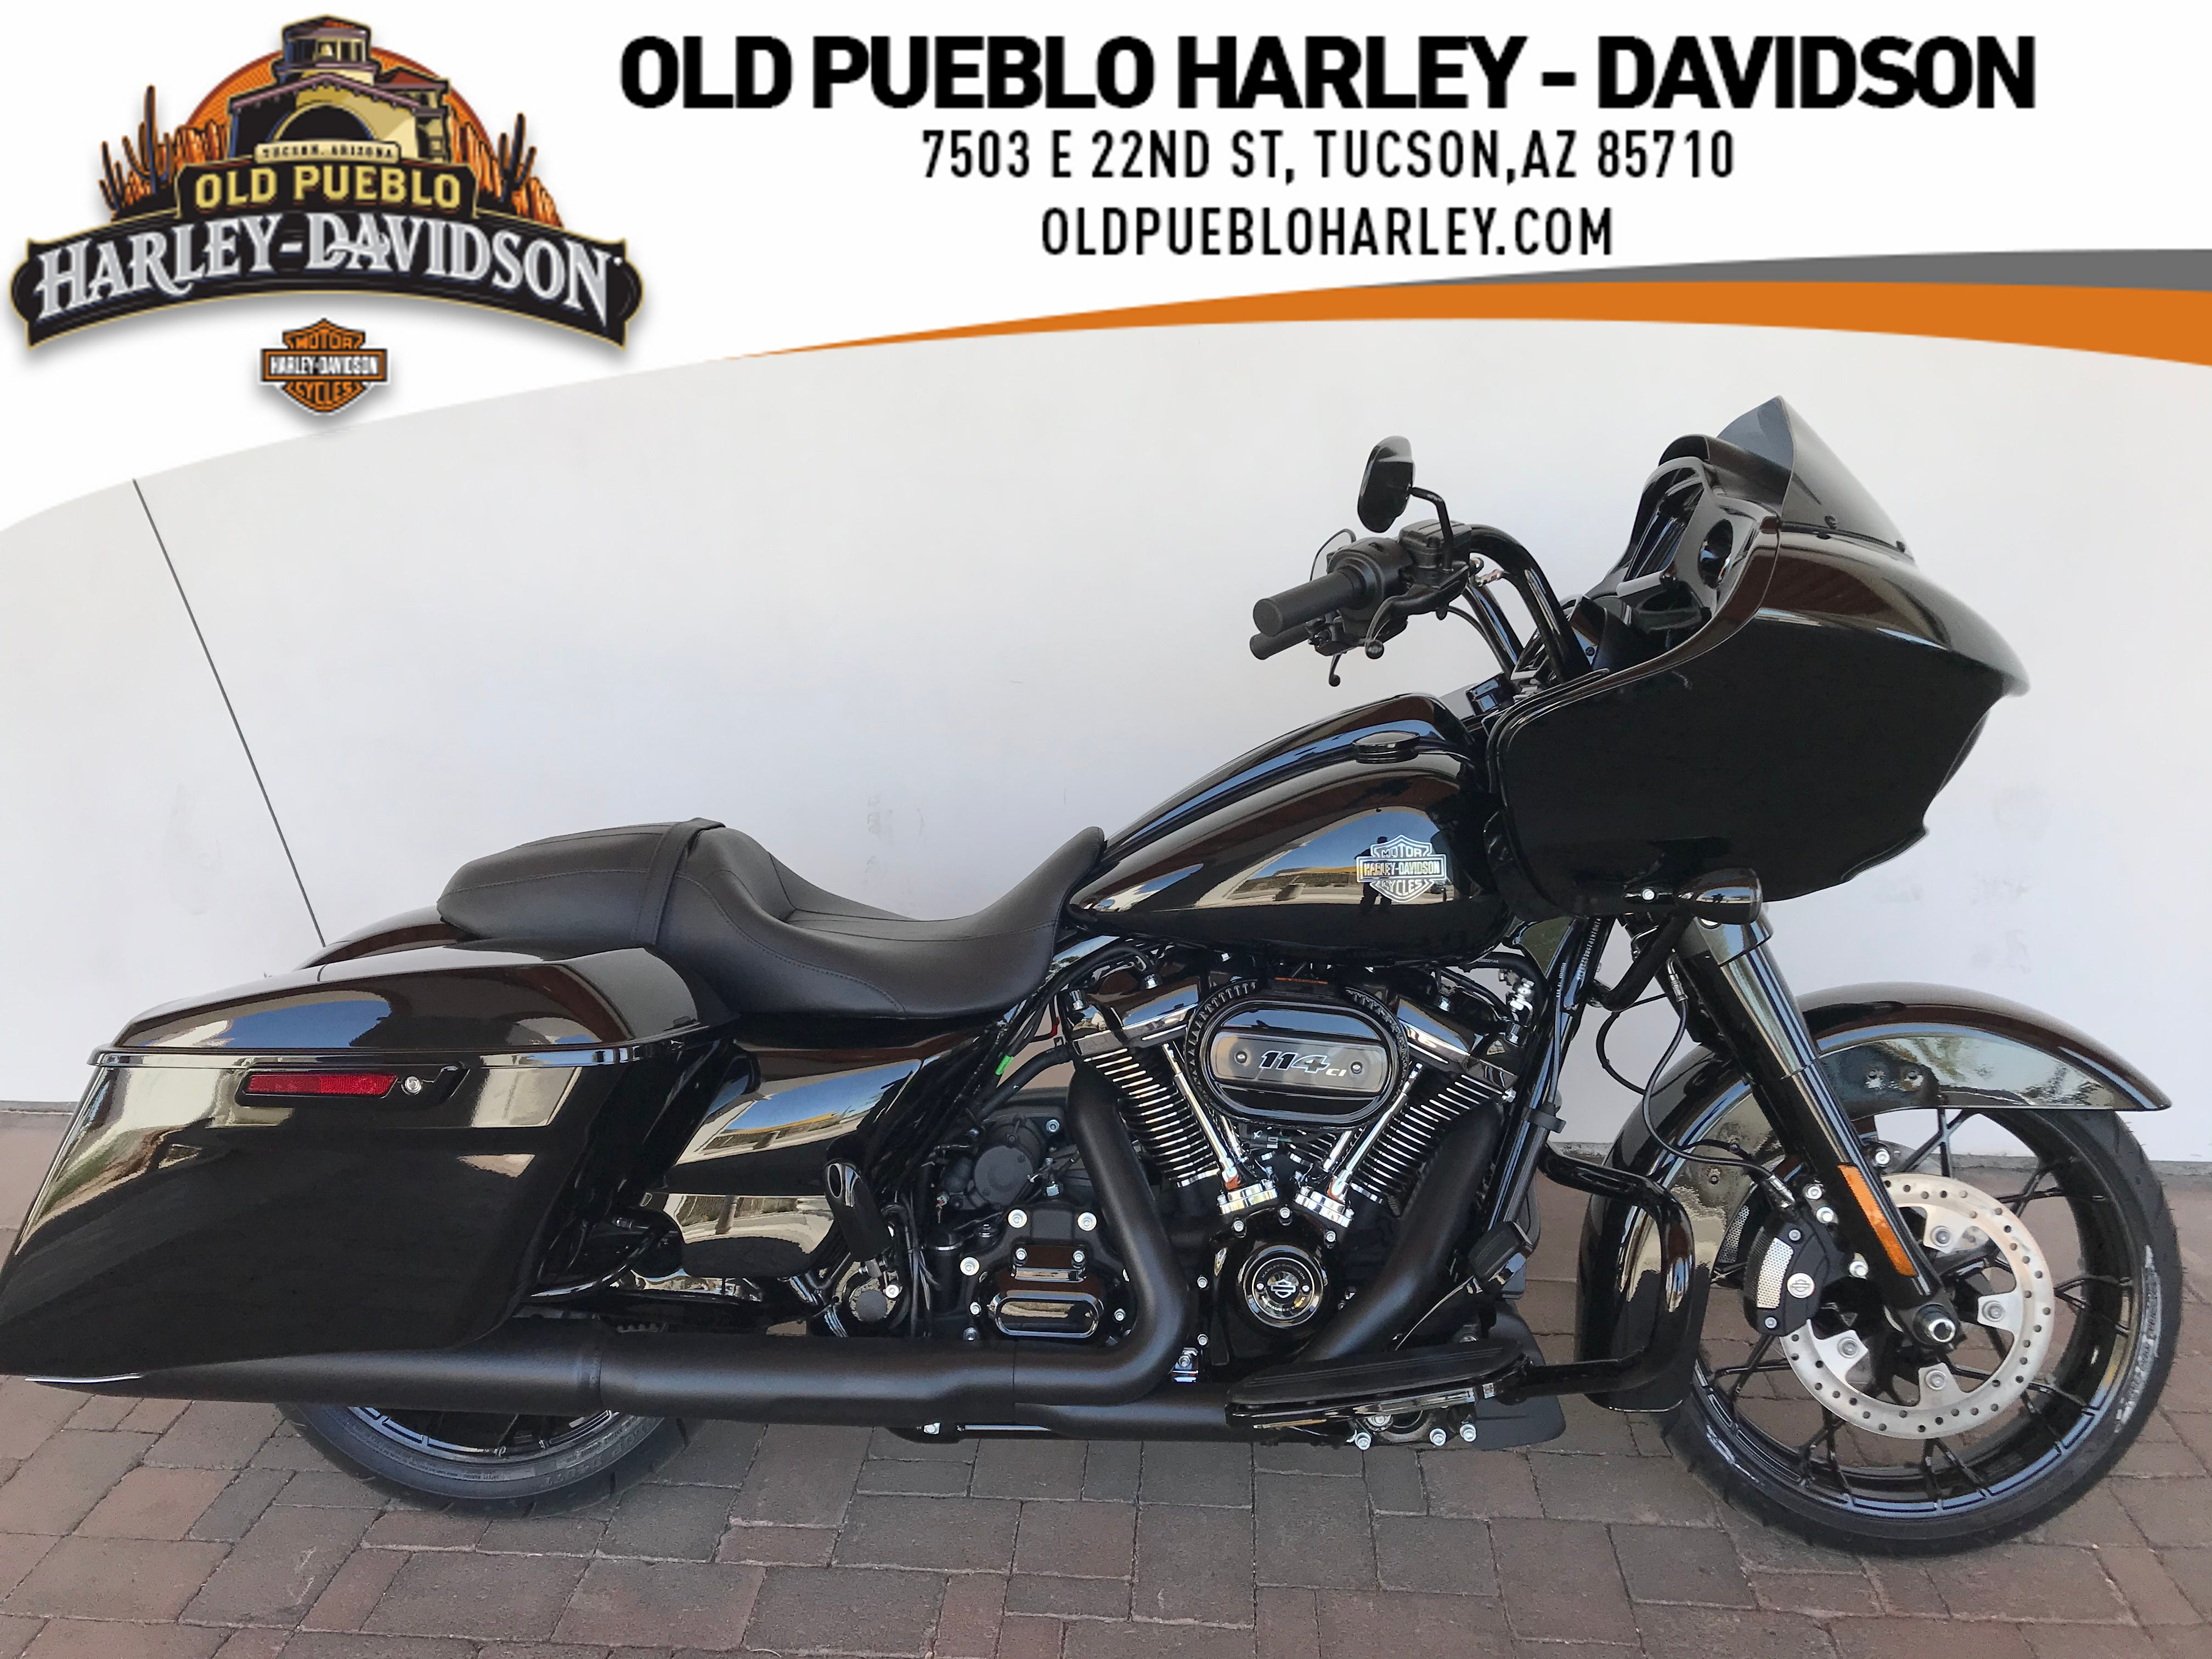 New 2021 Harley-Davidson Touring Road Glide Special FLTRXS